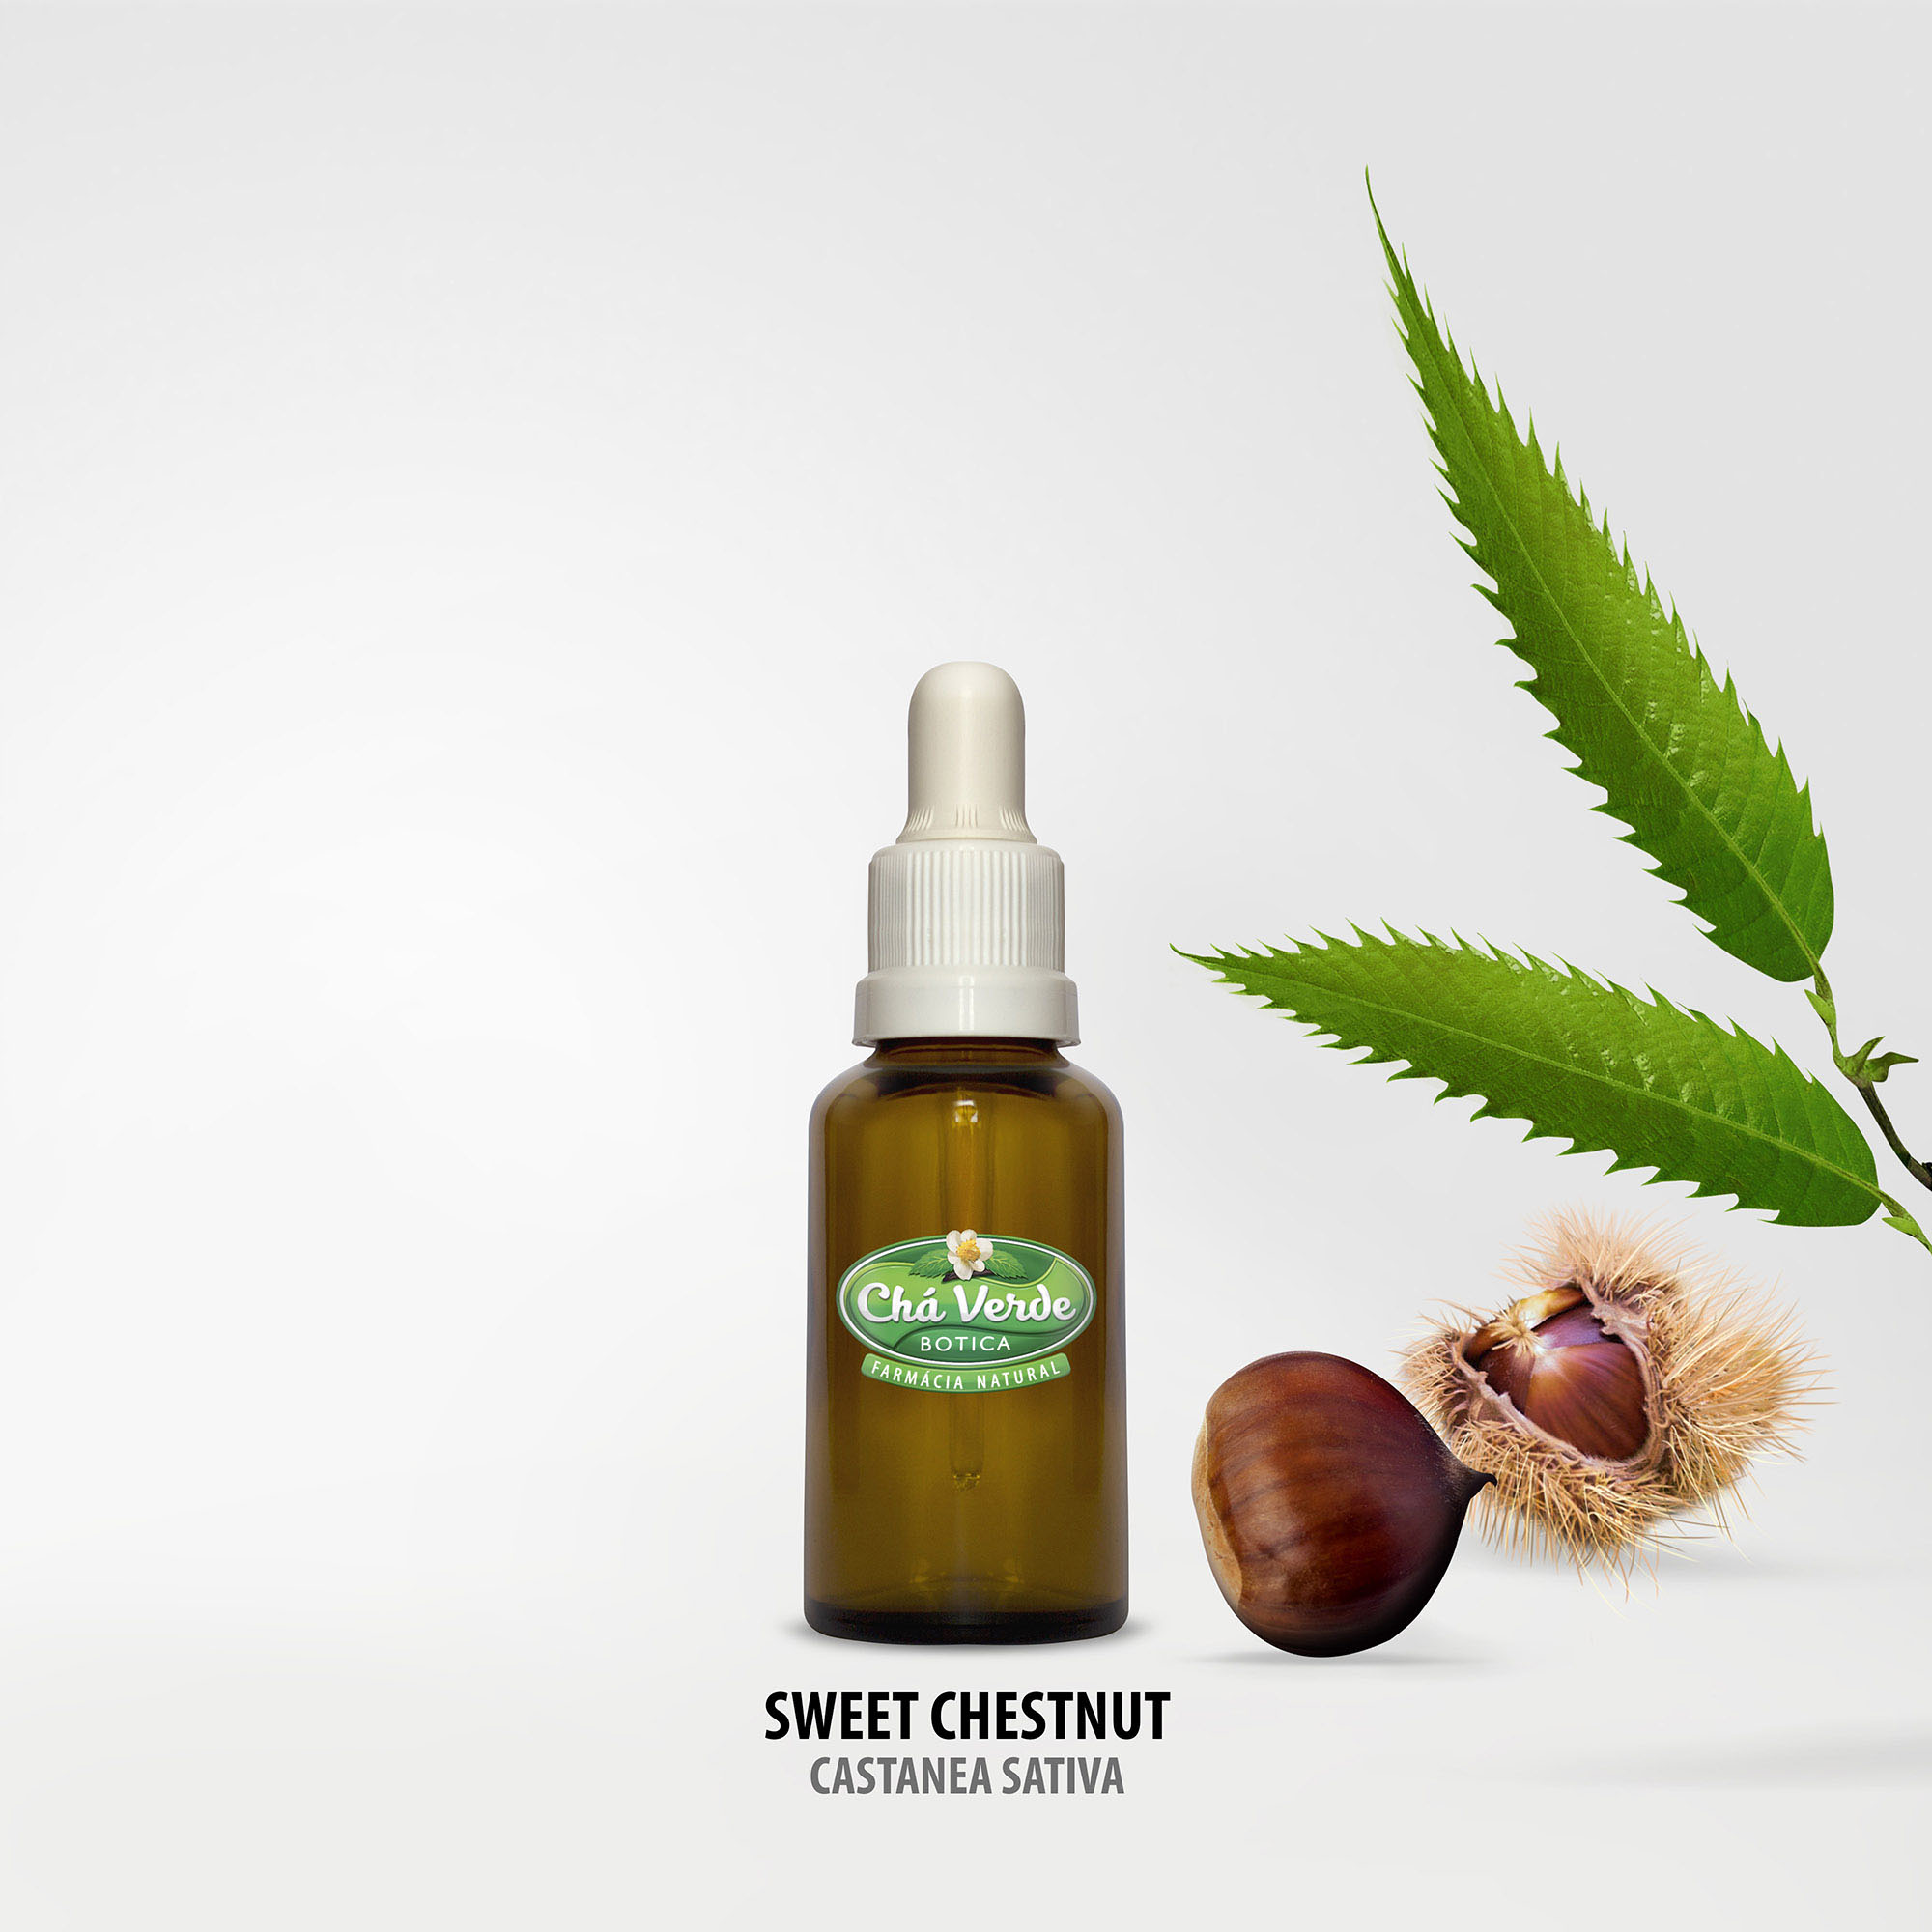 sweet-chestnut-castanea-sativa